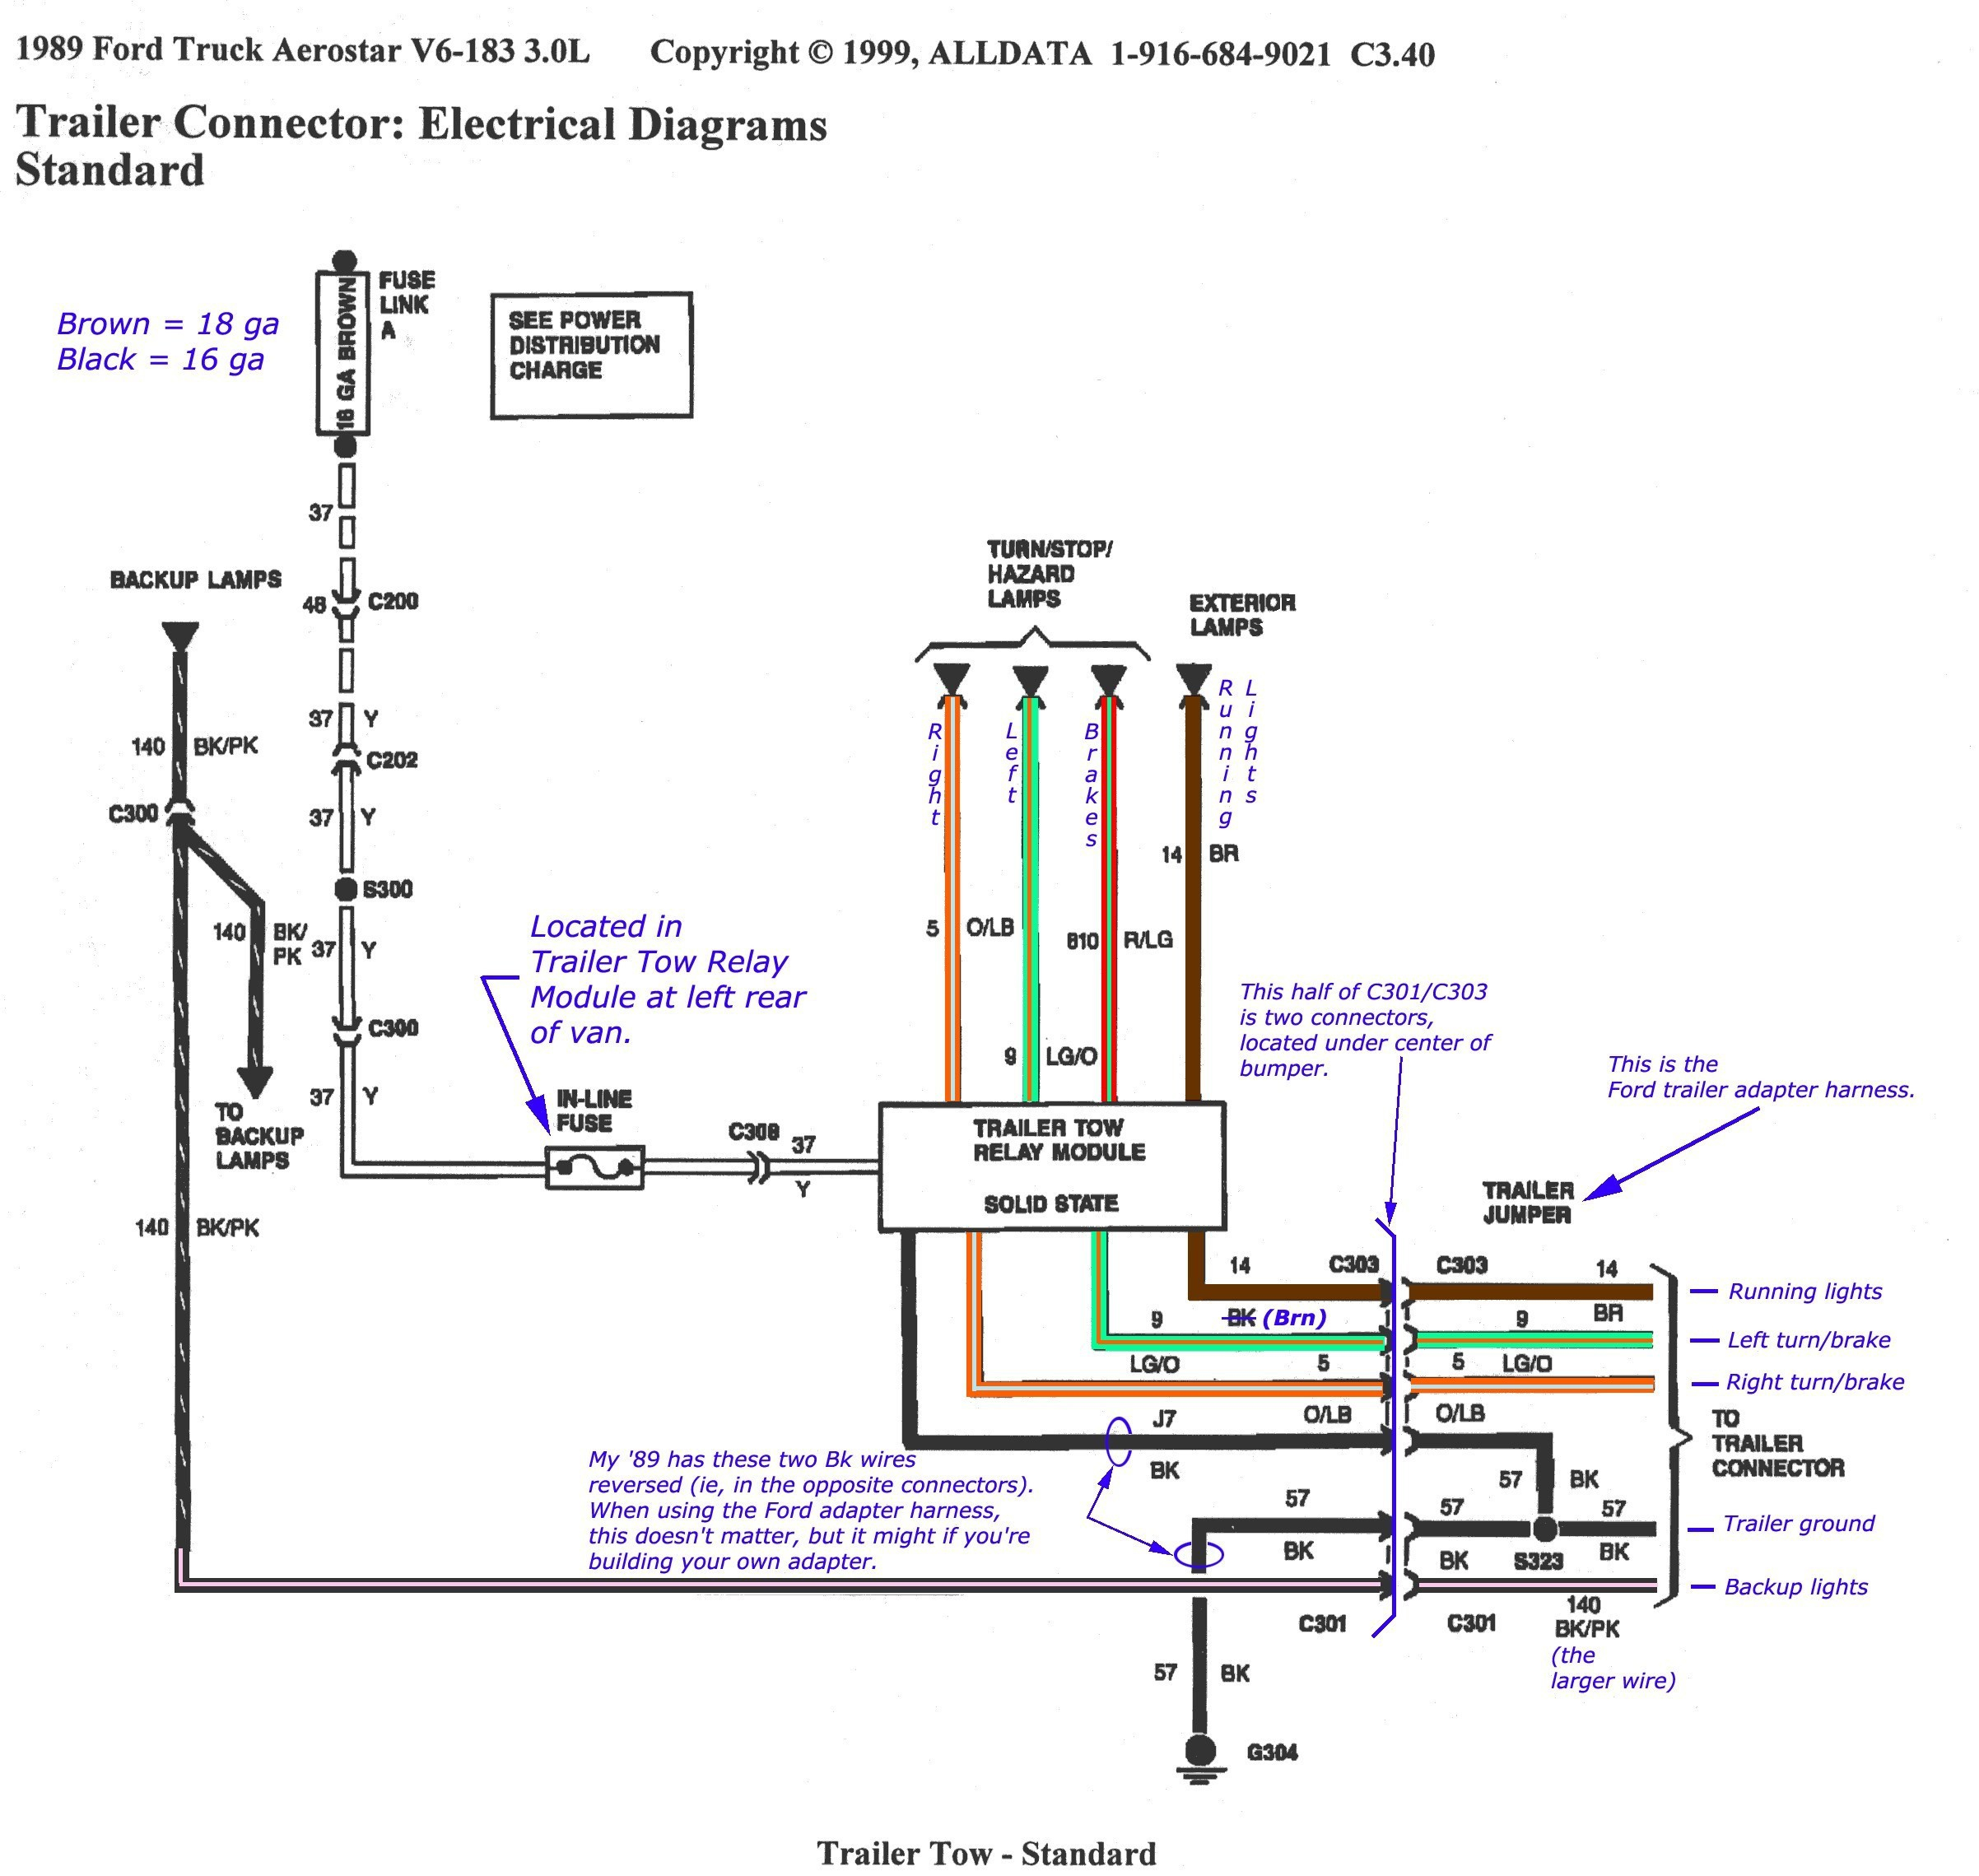 Ford Trailer Wiring Diagram - Wiring Diagrams - 99 F150 Trailer Wiring Diagram